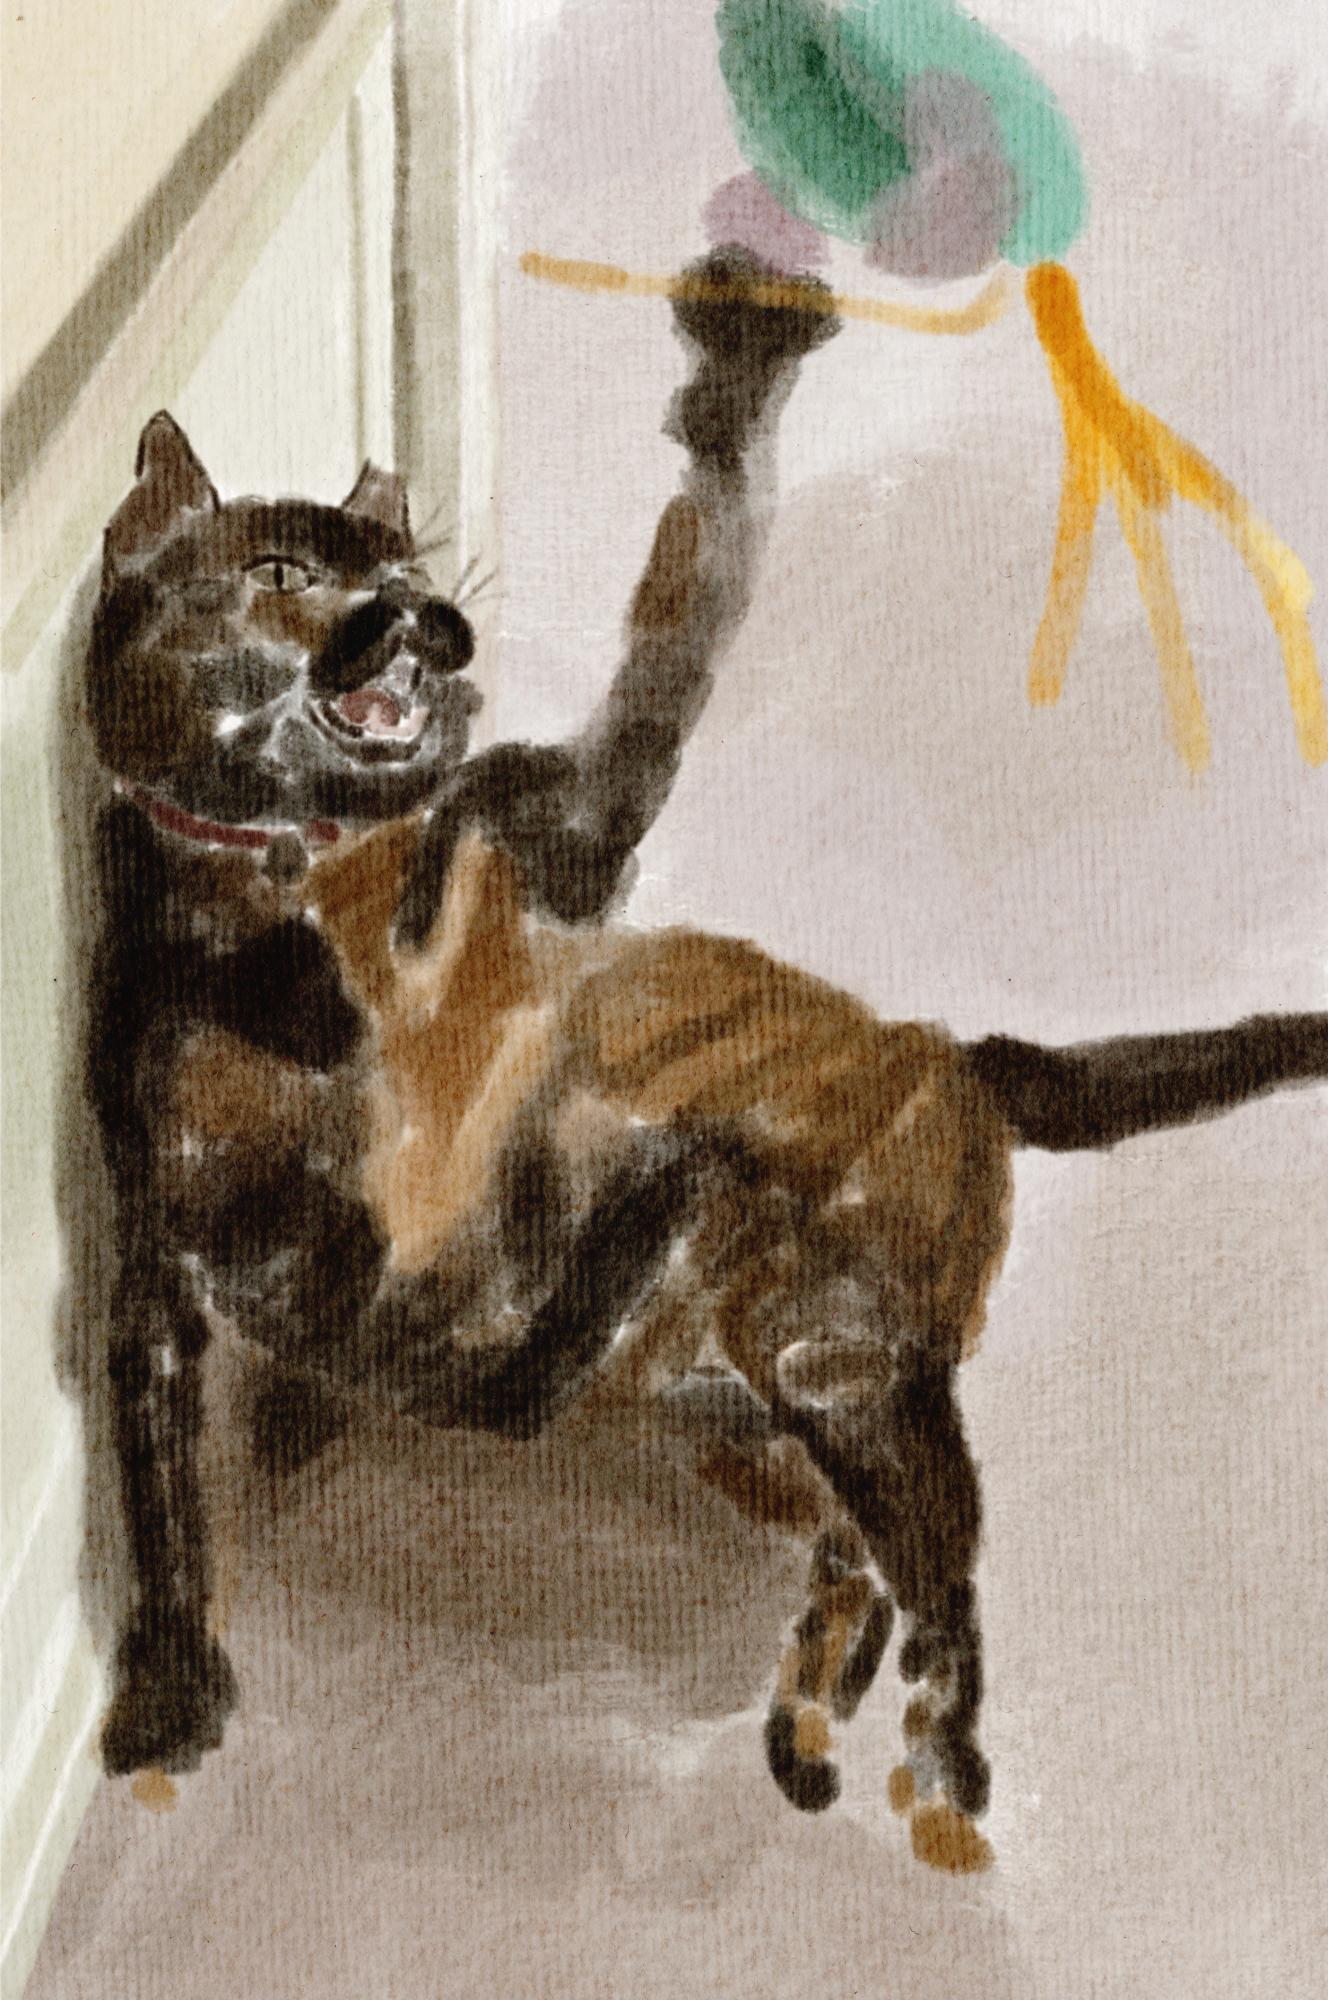 painting of a cat striking toy